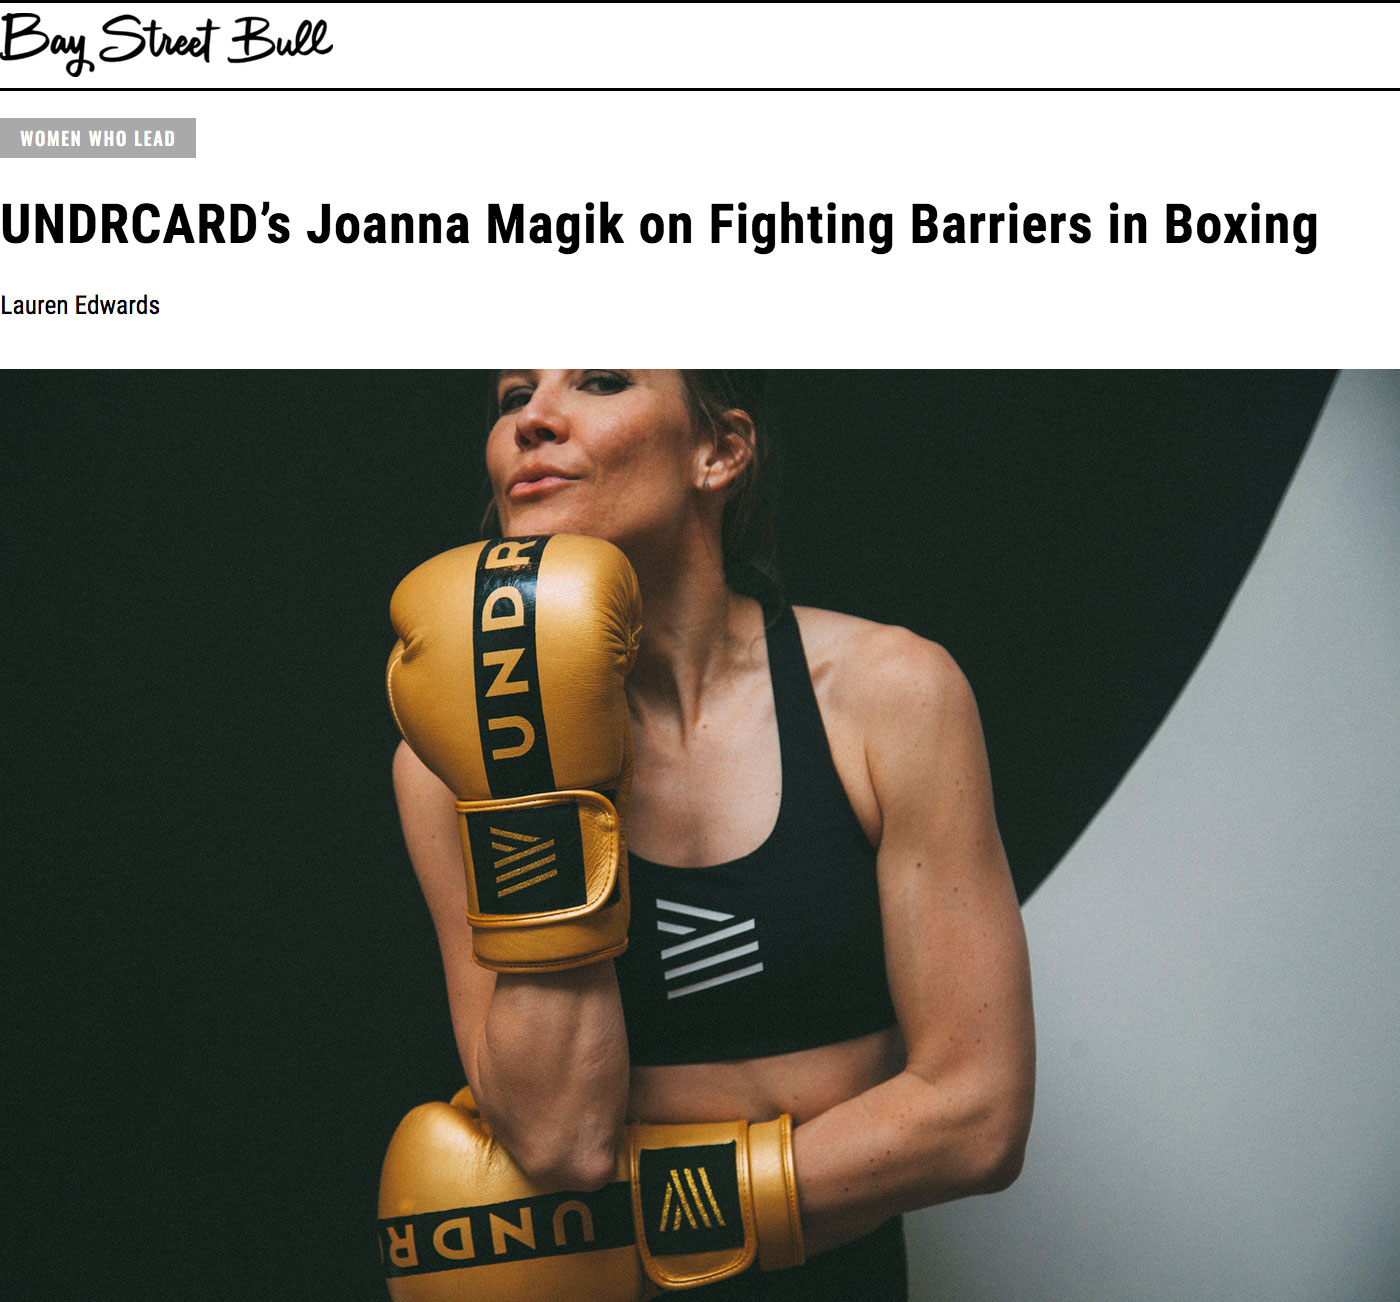 UNDRCARD Boxing Studio Toronto featured in The Bay Street Bull